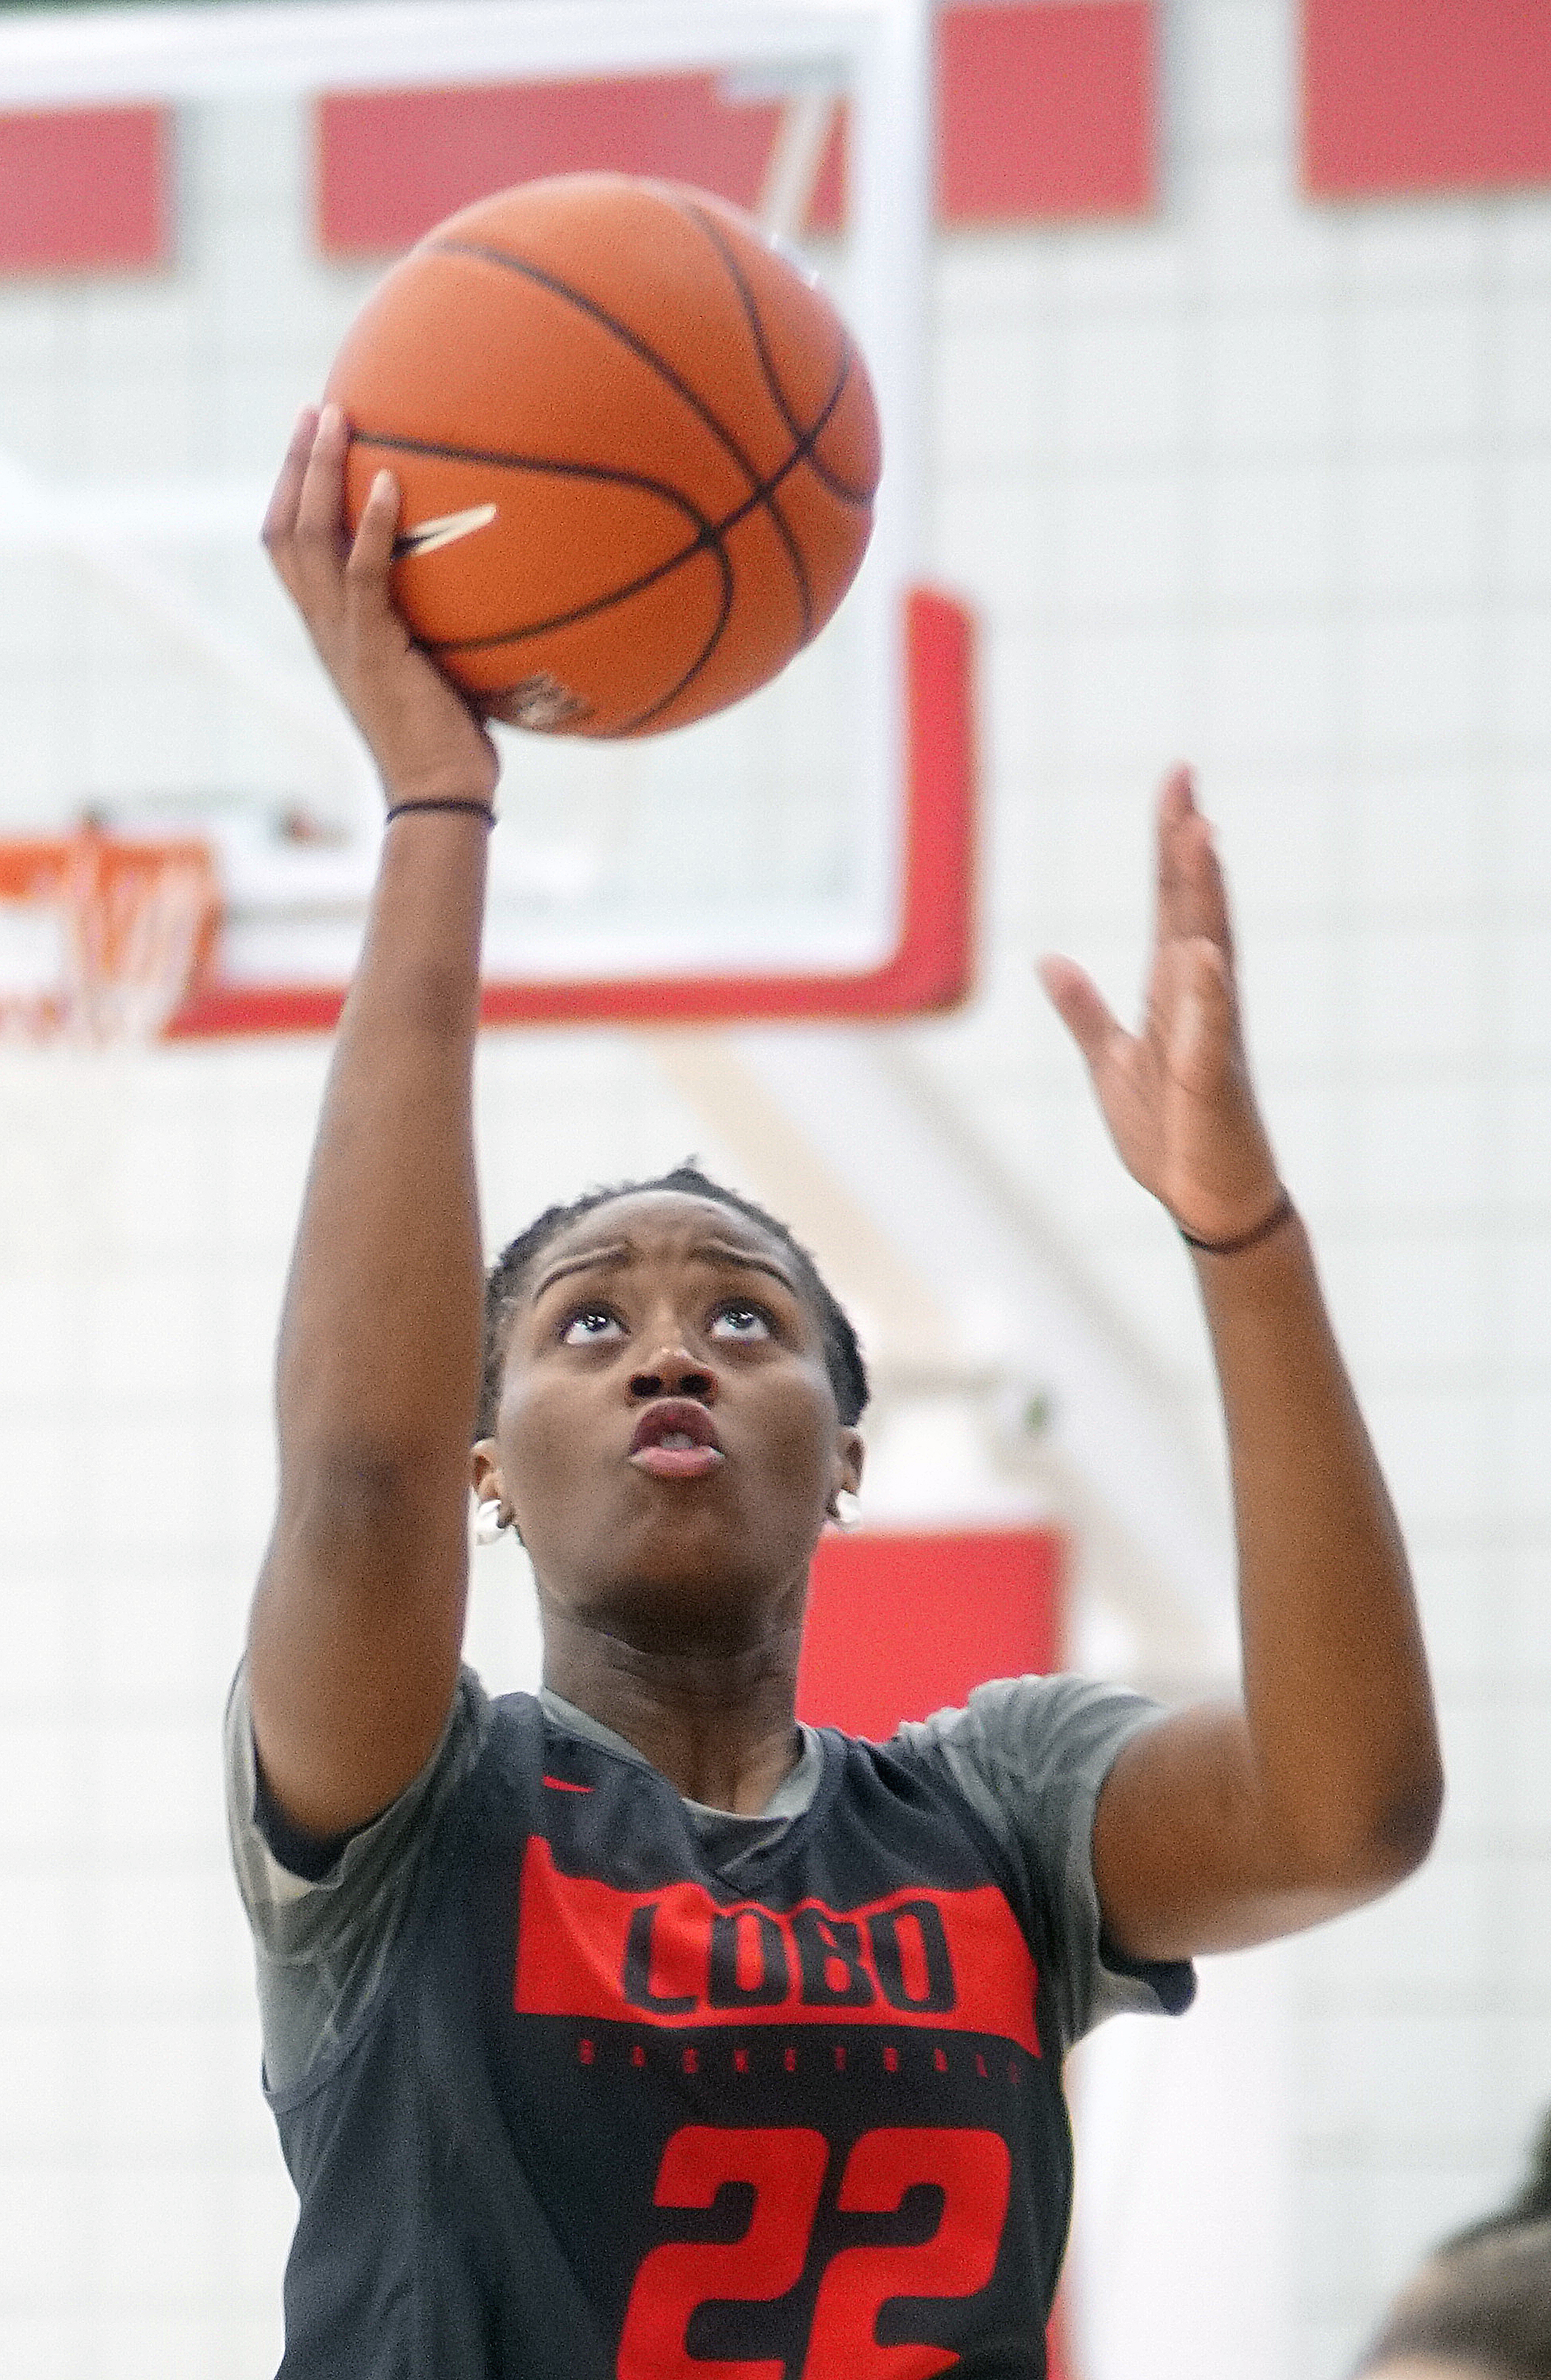 New Lobo Hosey adjusts to mile-high elevation, expectations